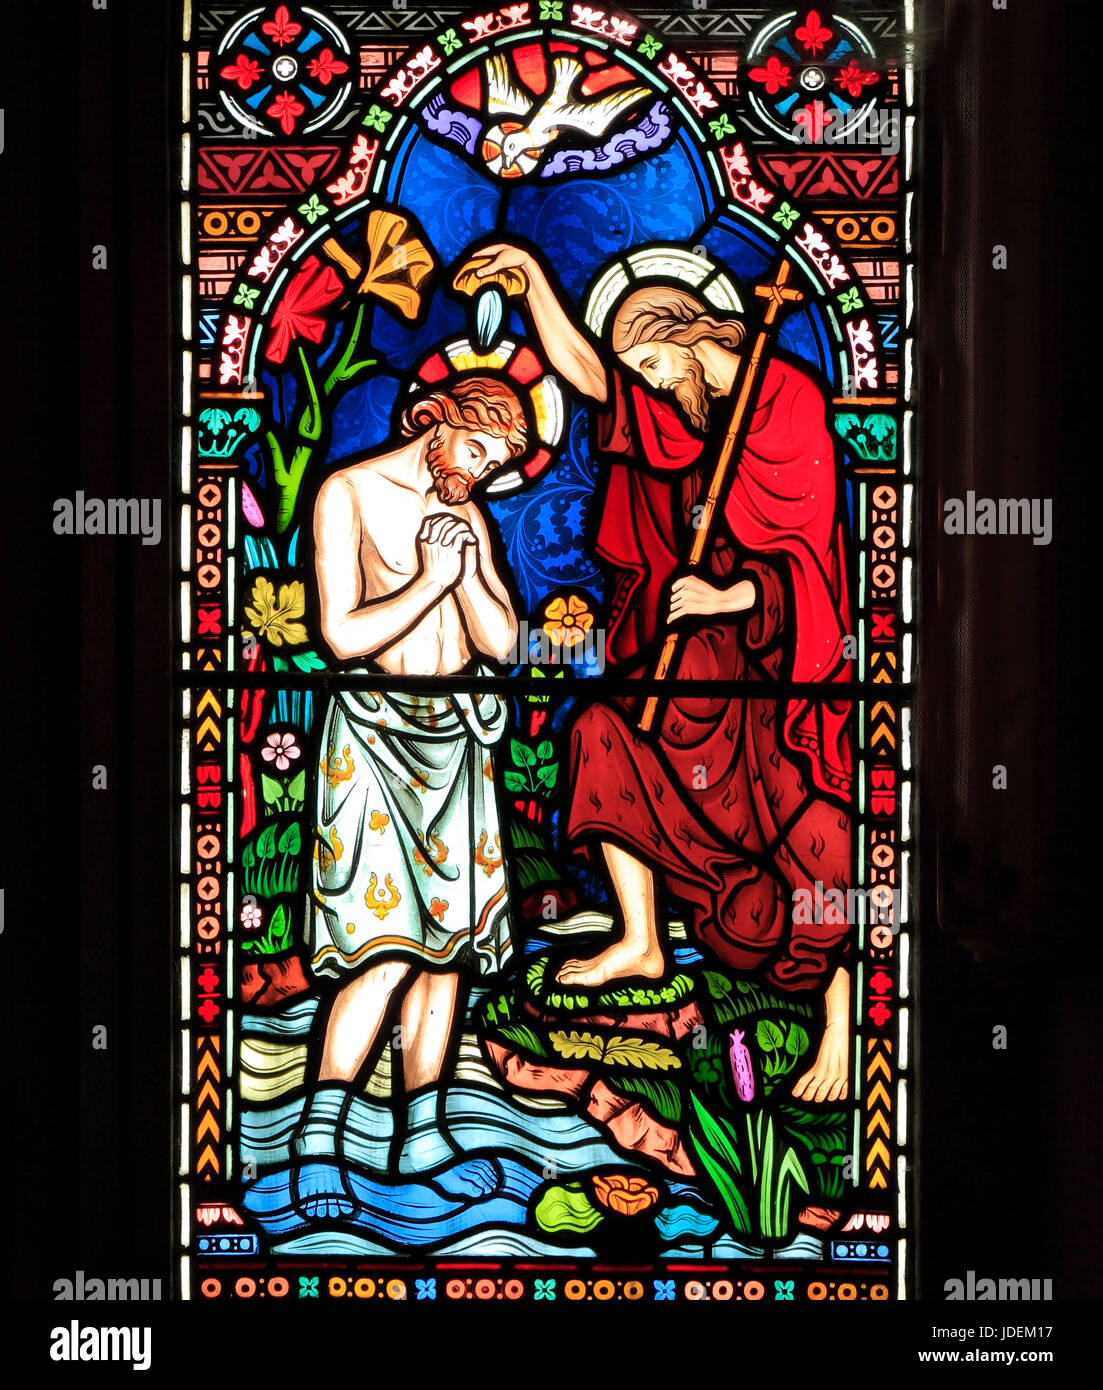 Life of Jesus, Baptism by John the Baptist, in River Jordan, stained glass window by Frederick Preedy, 1865, Gunthorpe, - Stock Image